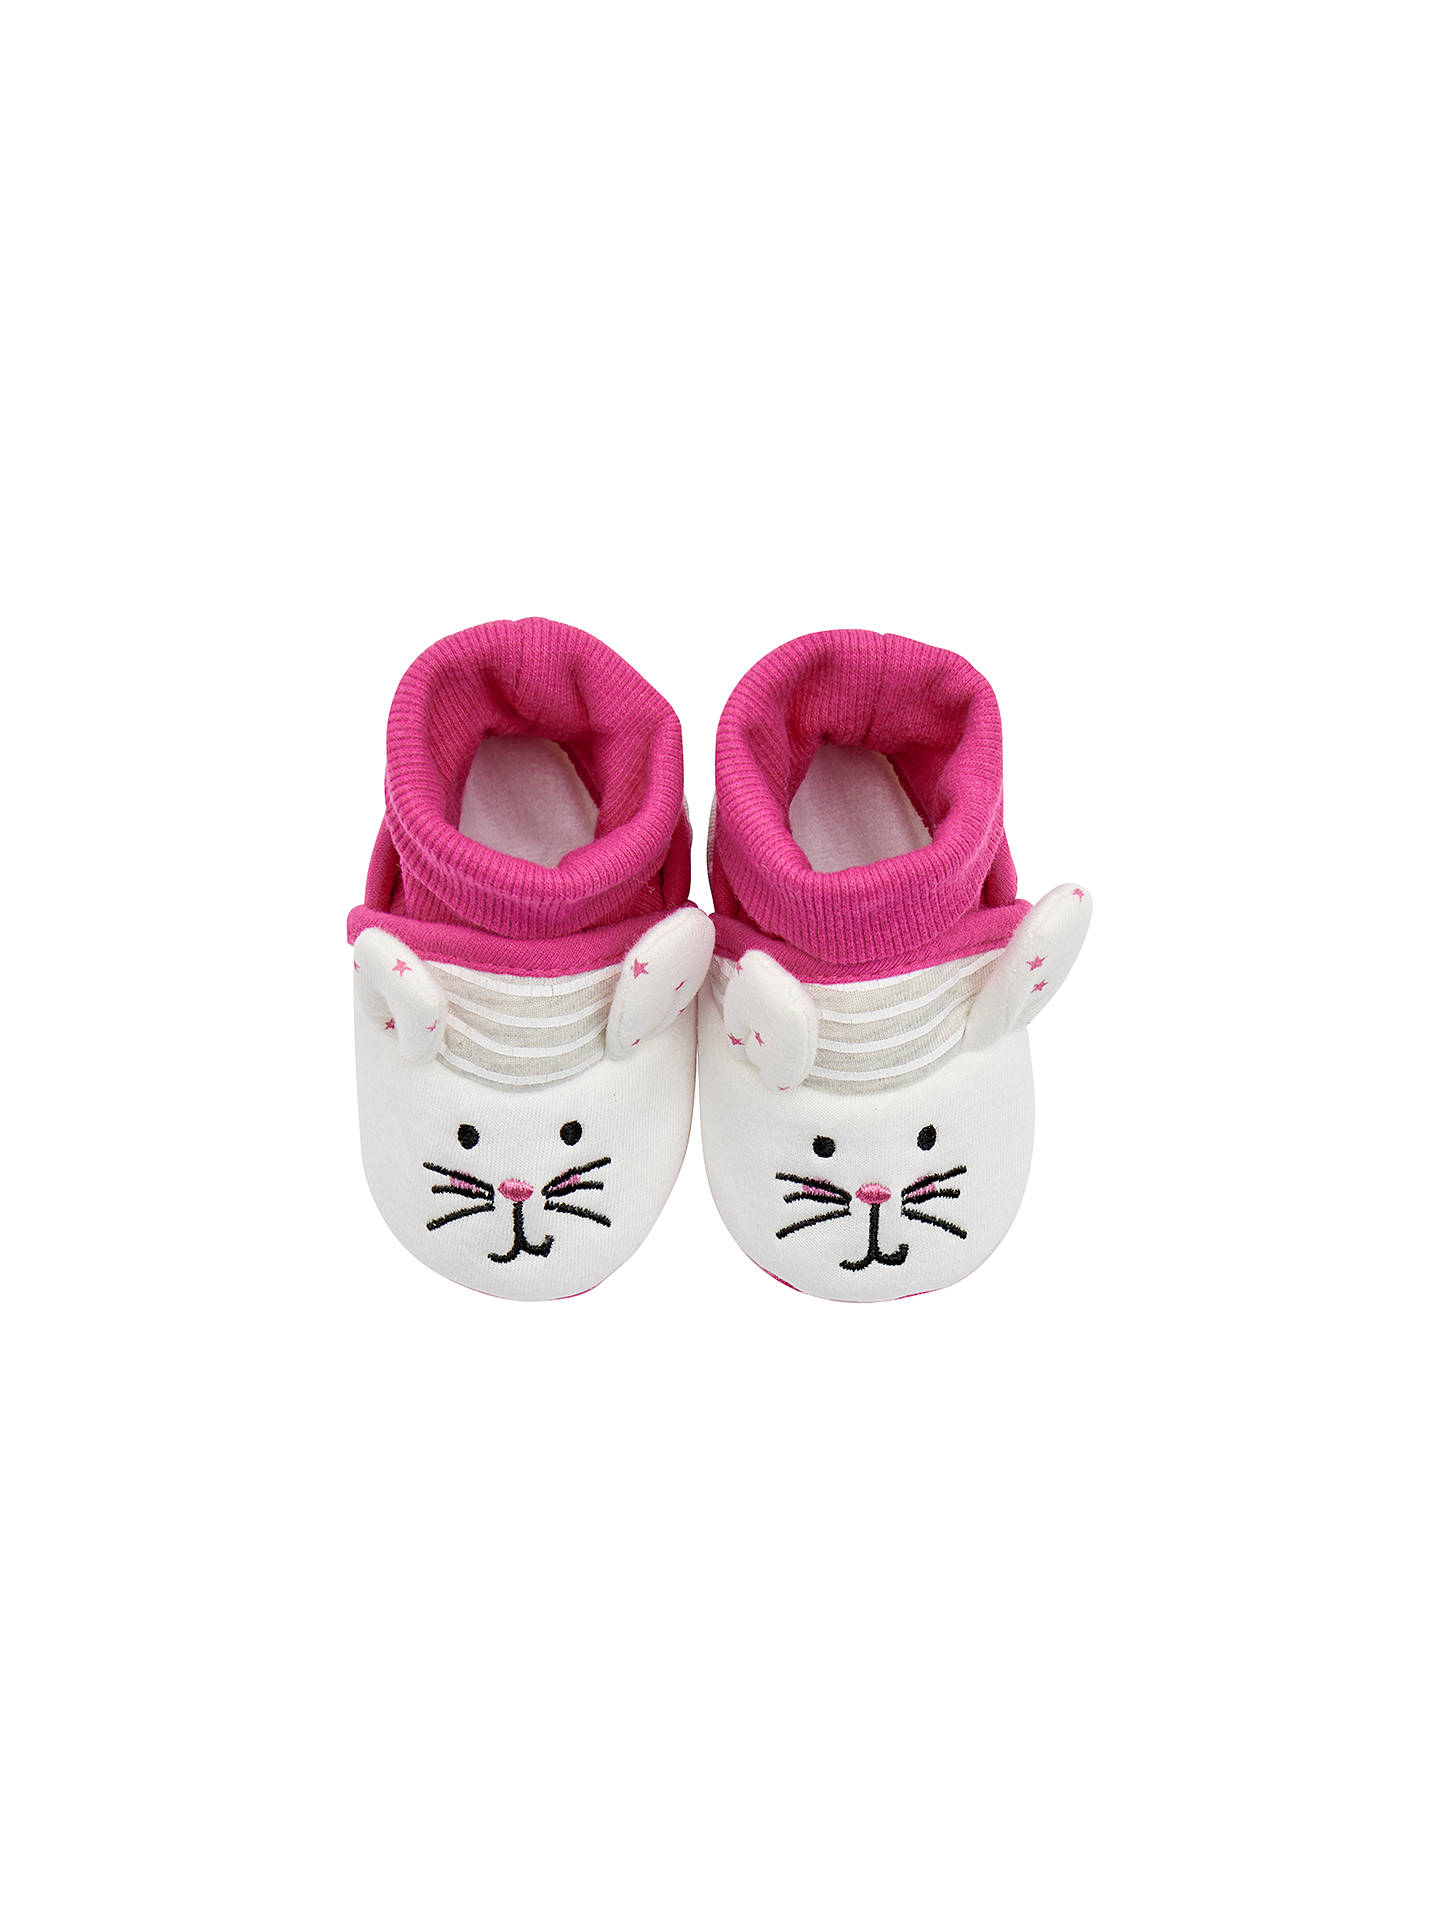 c3477f38837 ... Buy Baby Joule Bunny Slippers